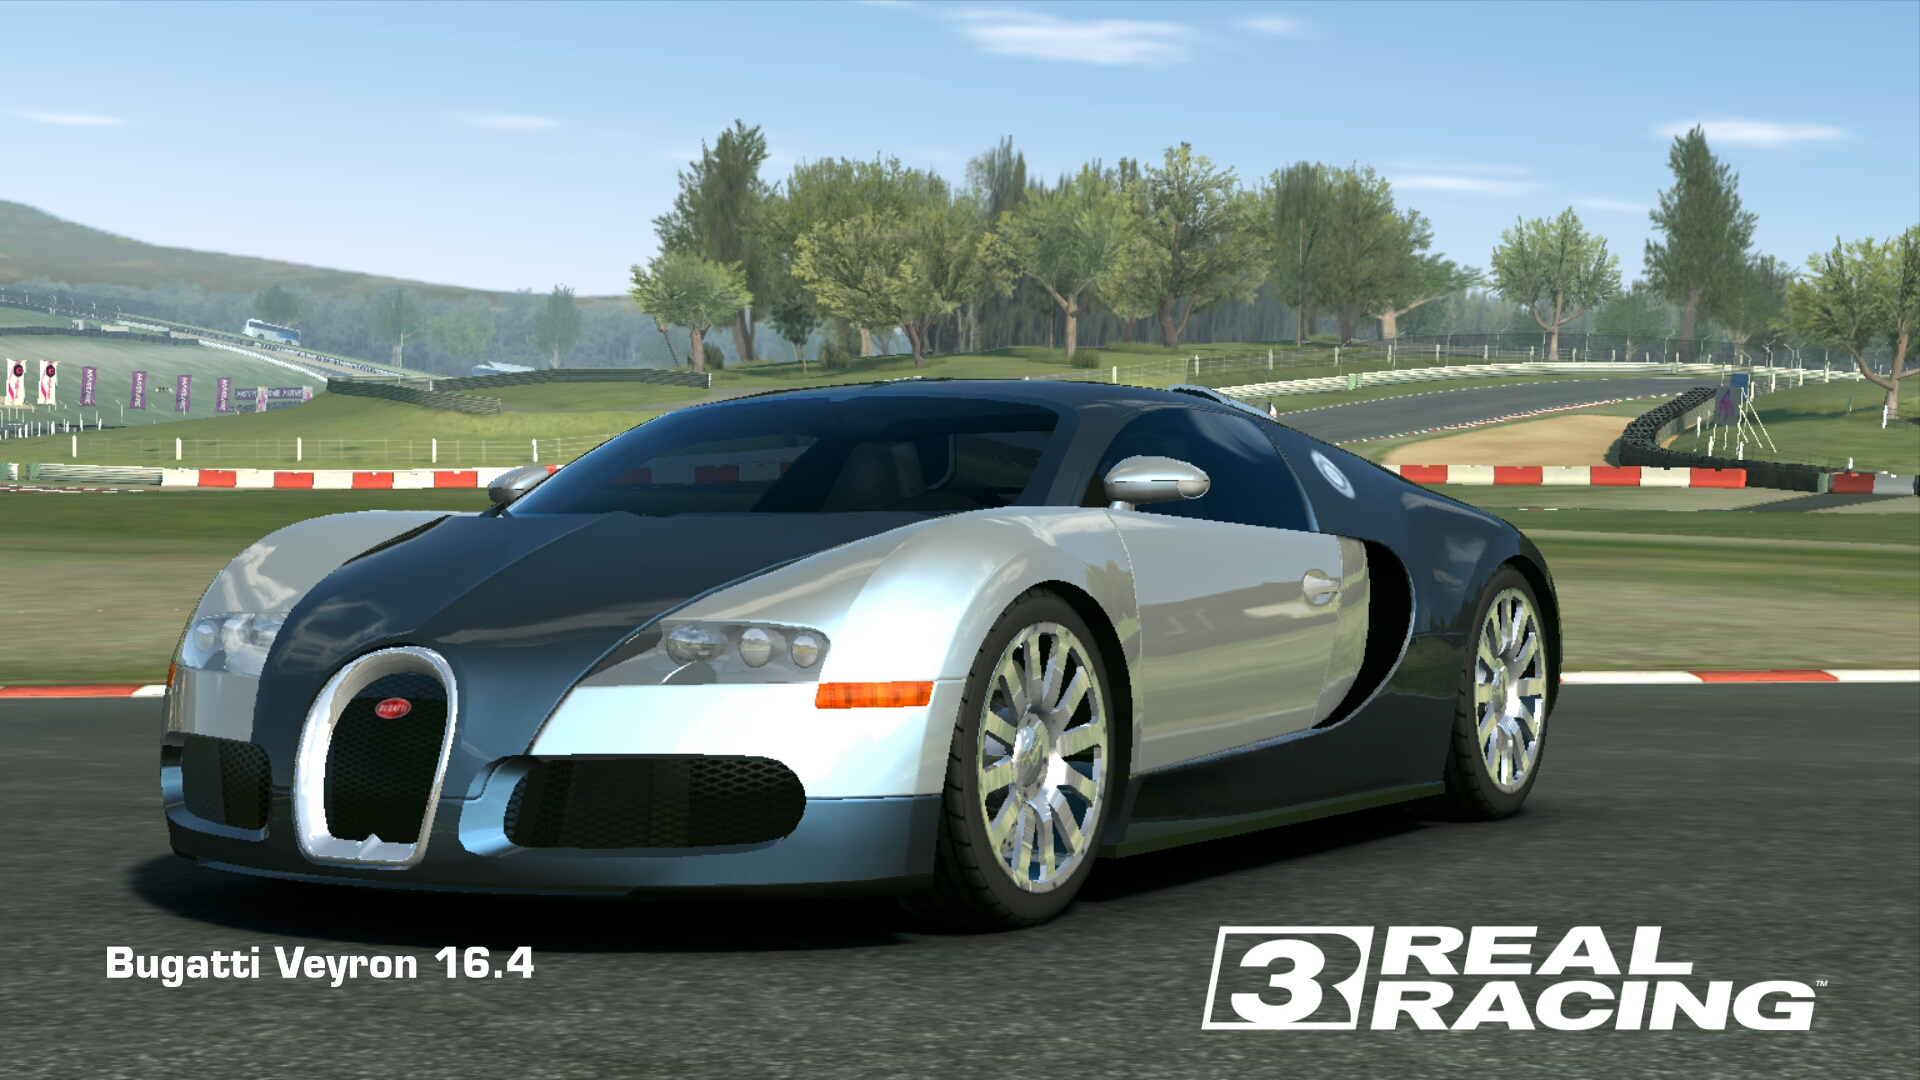 latest?cb=20150728041619 Amazing Price Of Bugatti Veyron 16.4 Grand Sport Vitesse In Real Racing 3 Cars Trend